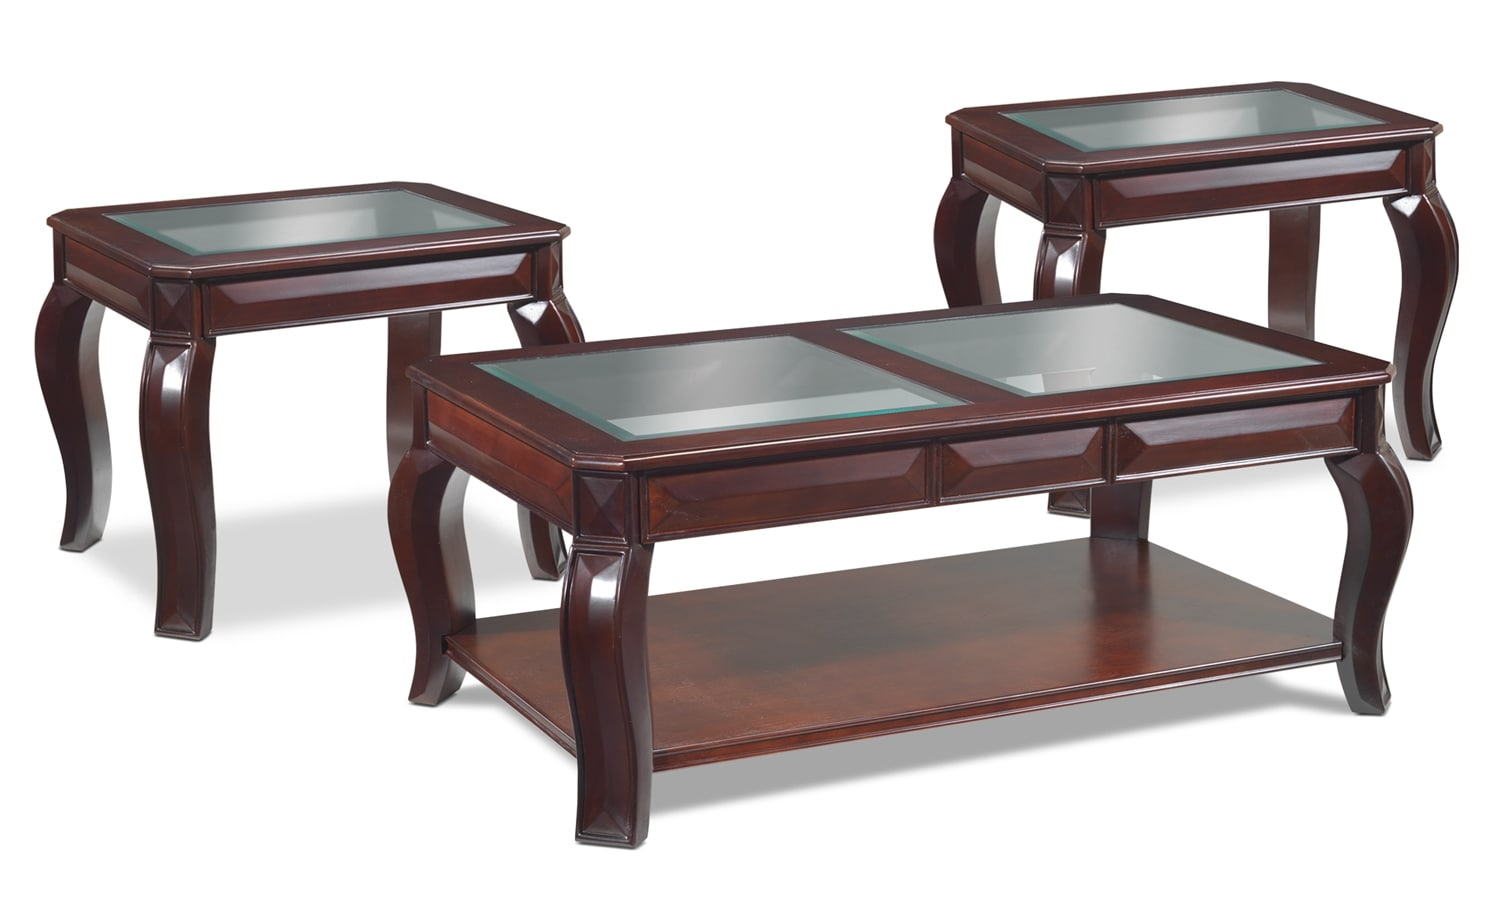 Jamison Coffee Table and Two End Tables - Deep Espresso